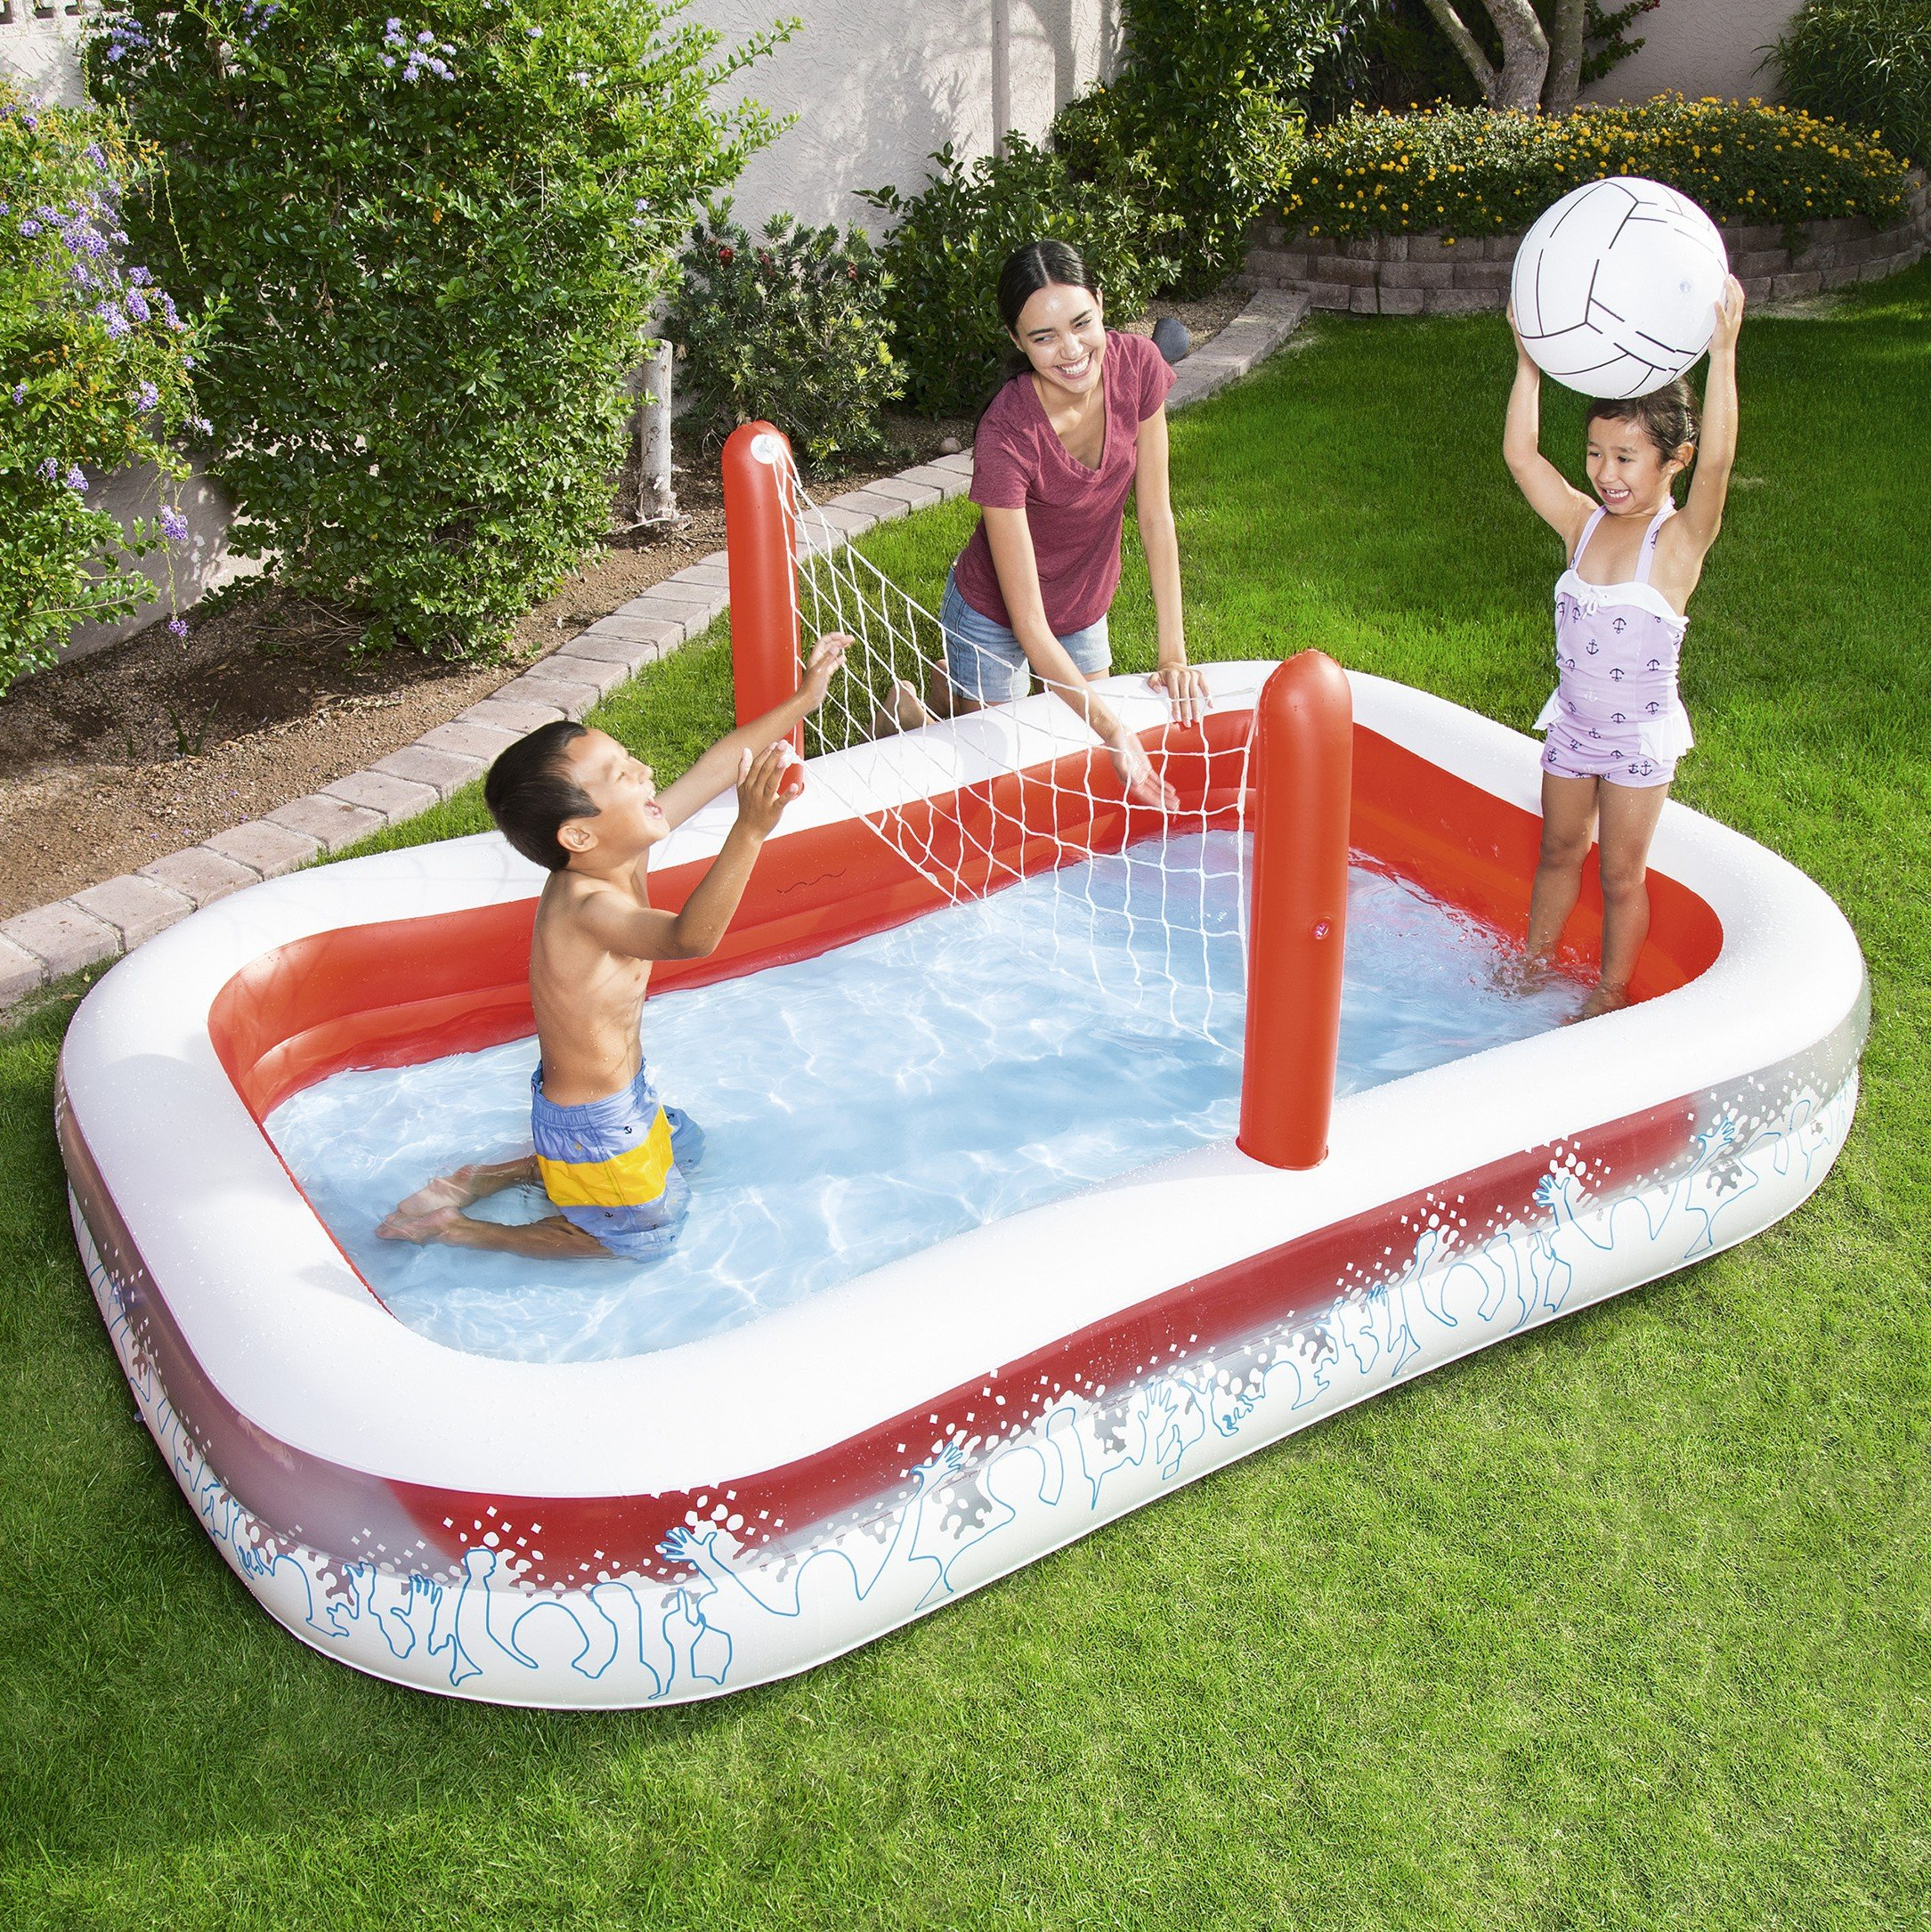 Piscina Hinchable Infantil con Red Voleibol Bestway Inflate-A-Volley 254x168x97 cm: Amazon.es: Jardín